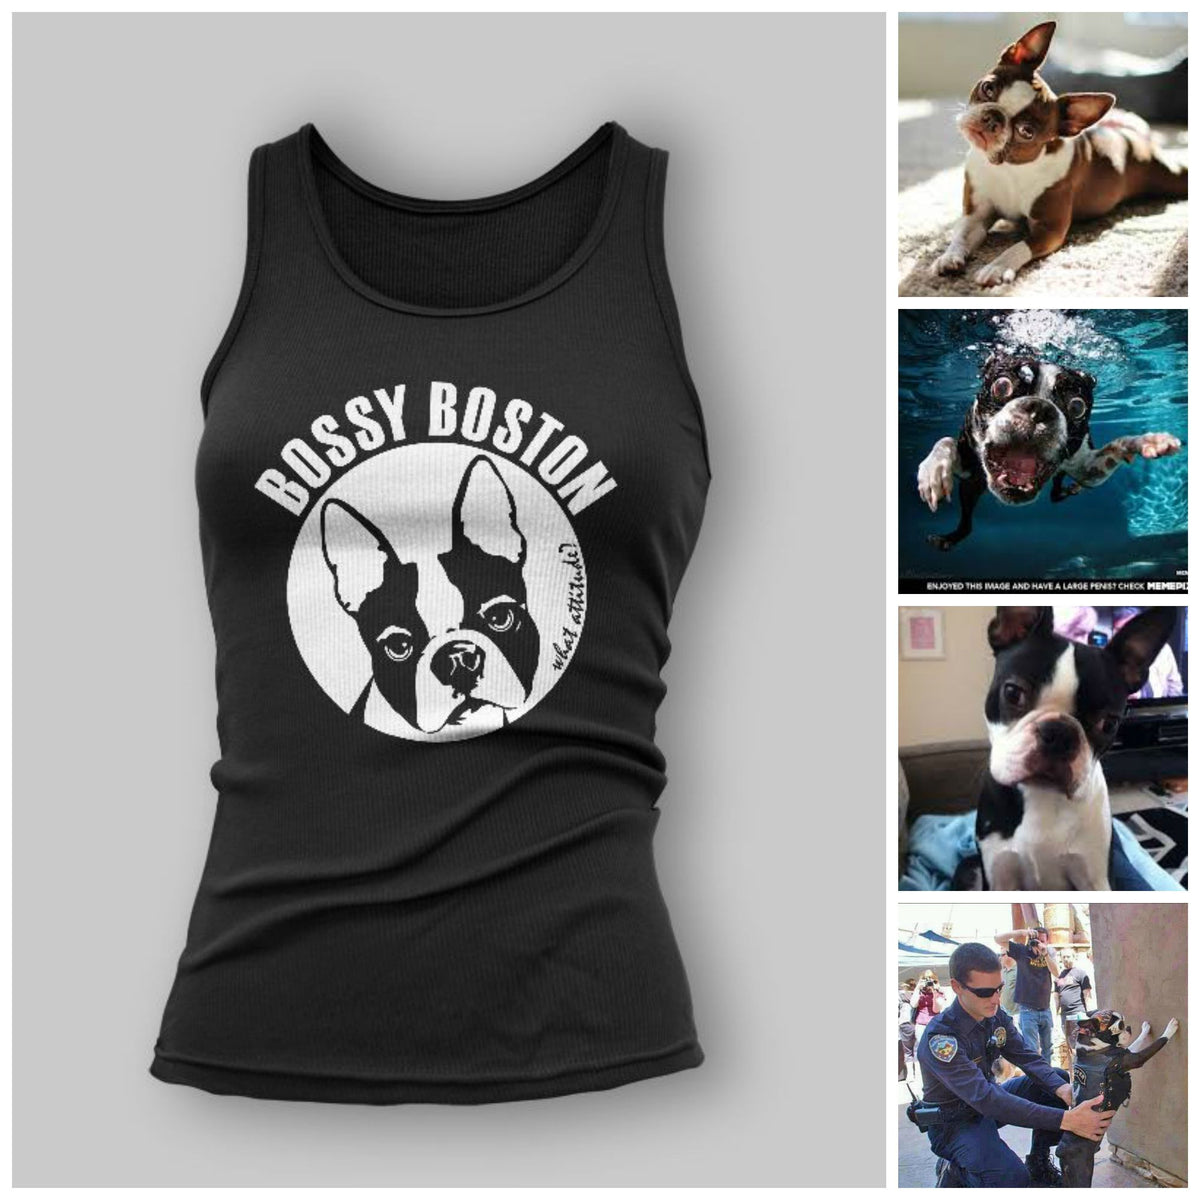 Woman's Bossy Boston Tank